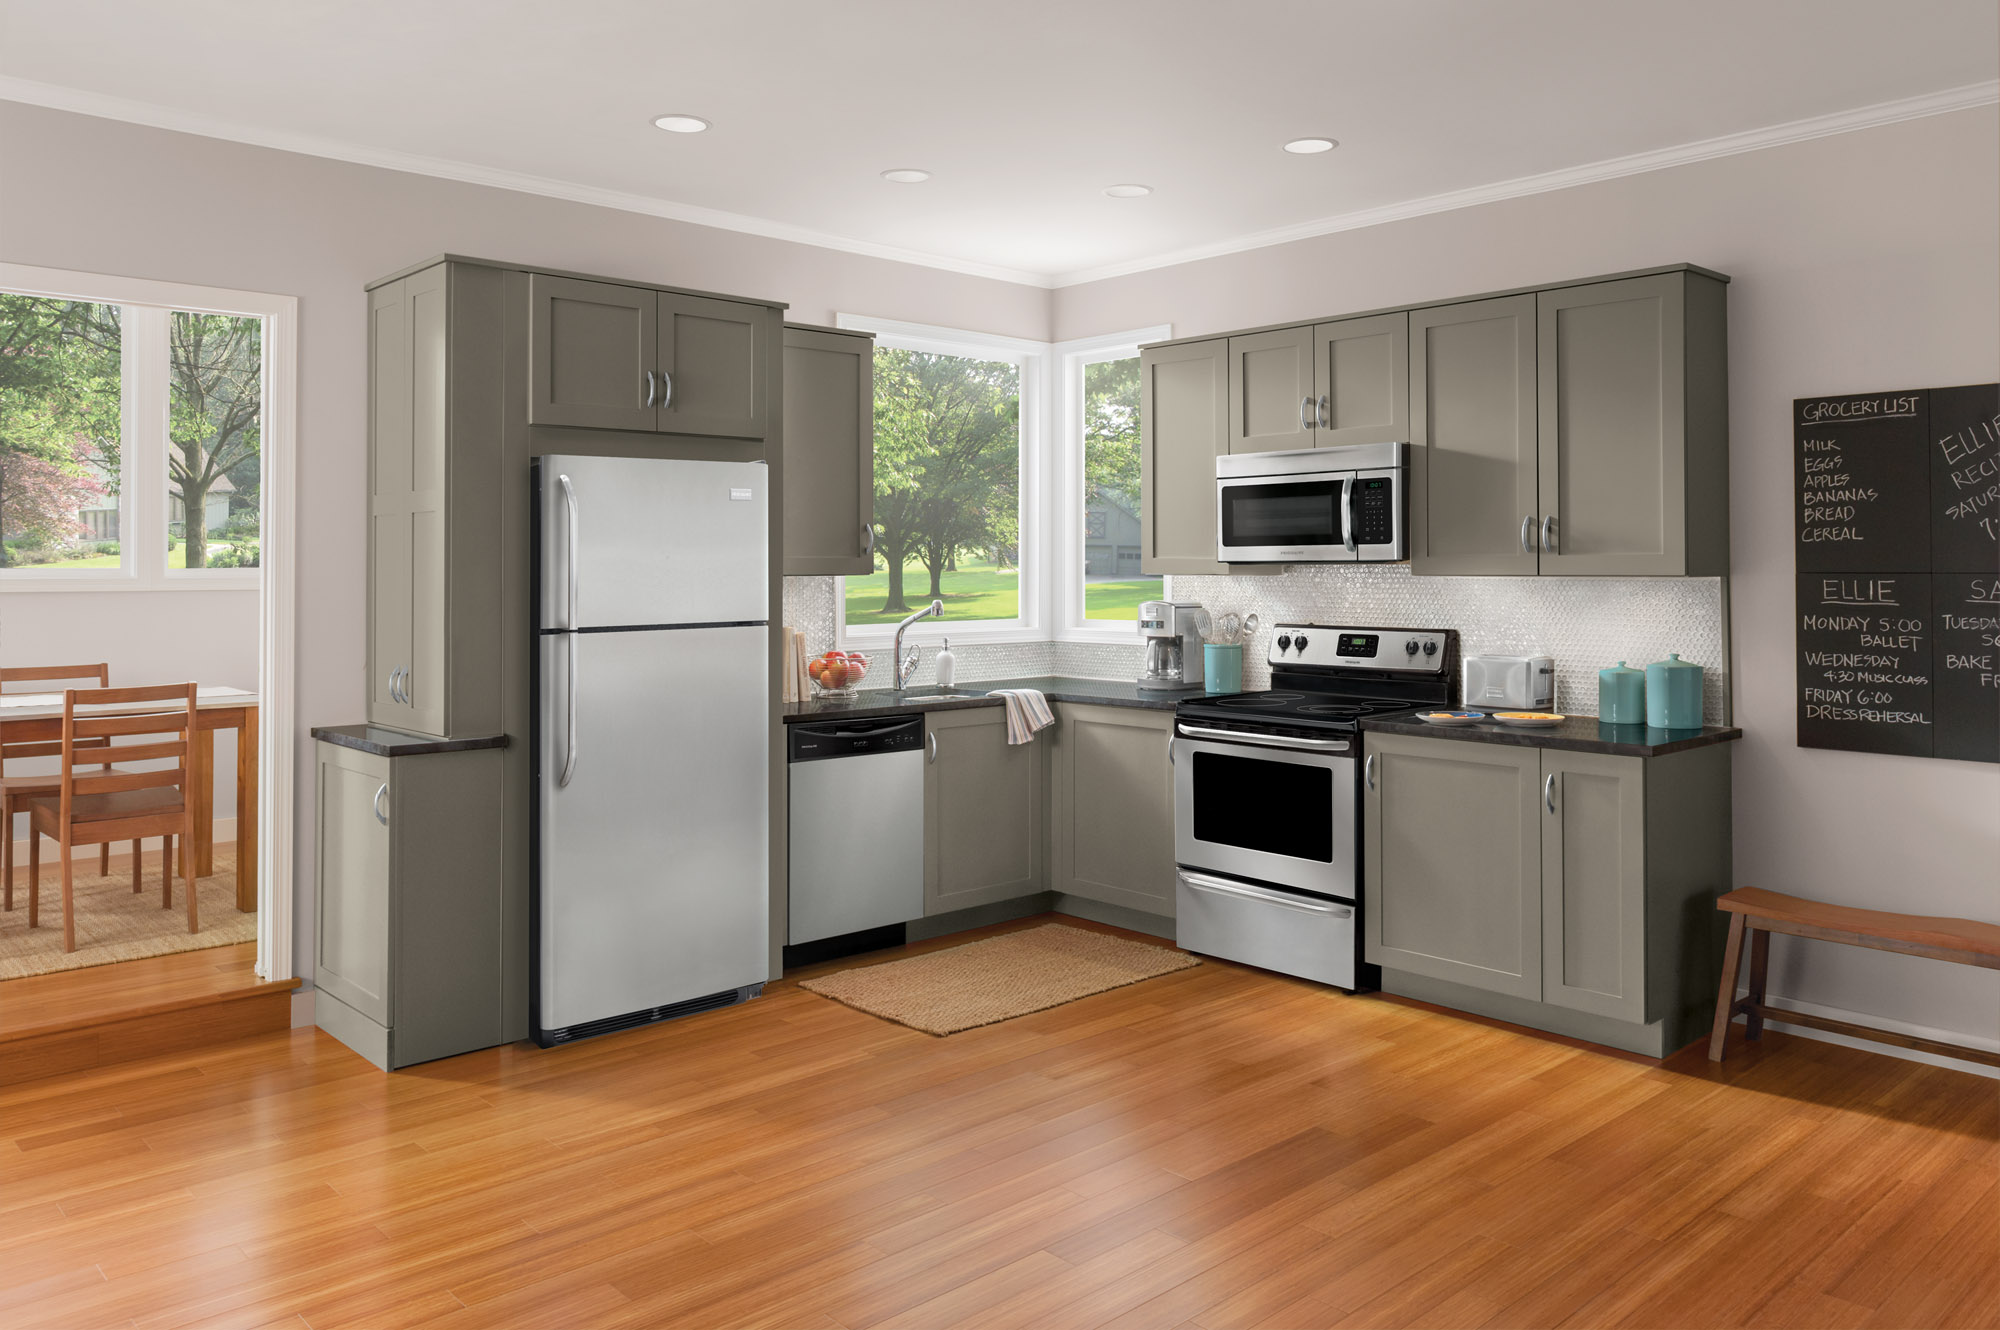 Outstanding White Kitchen Appliance Packages 2000 x 1330 · 452 kB · jpeg